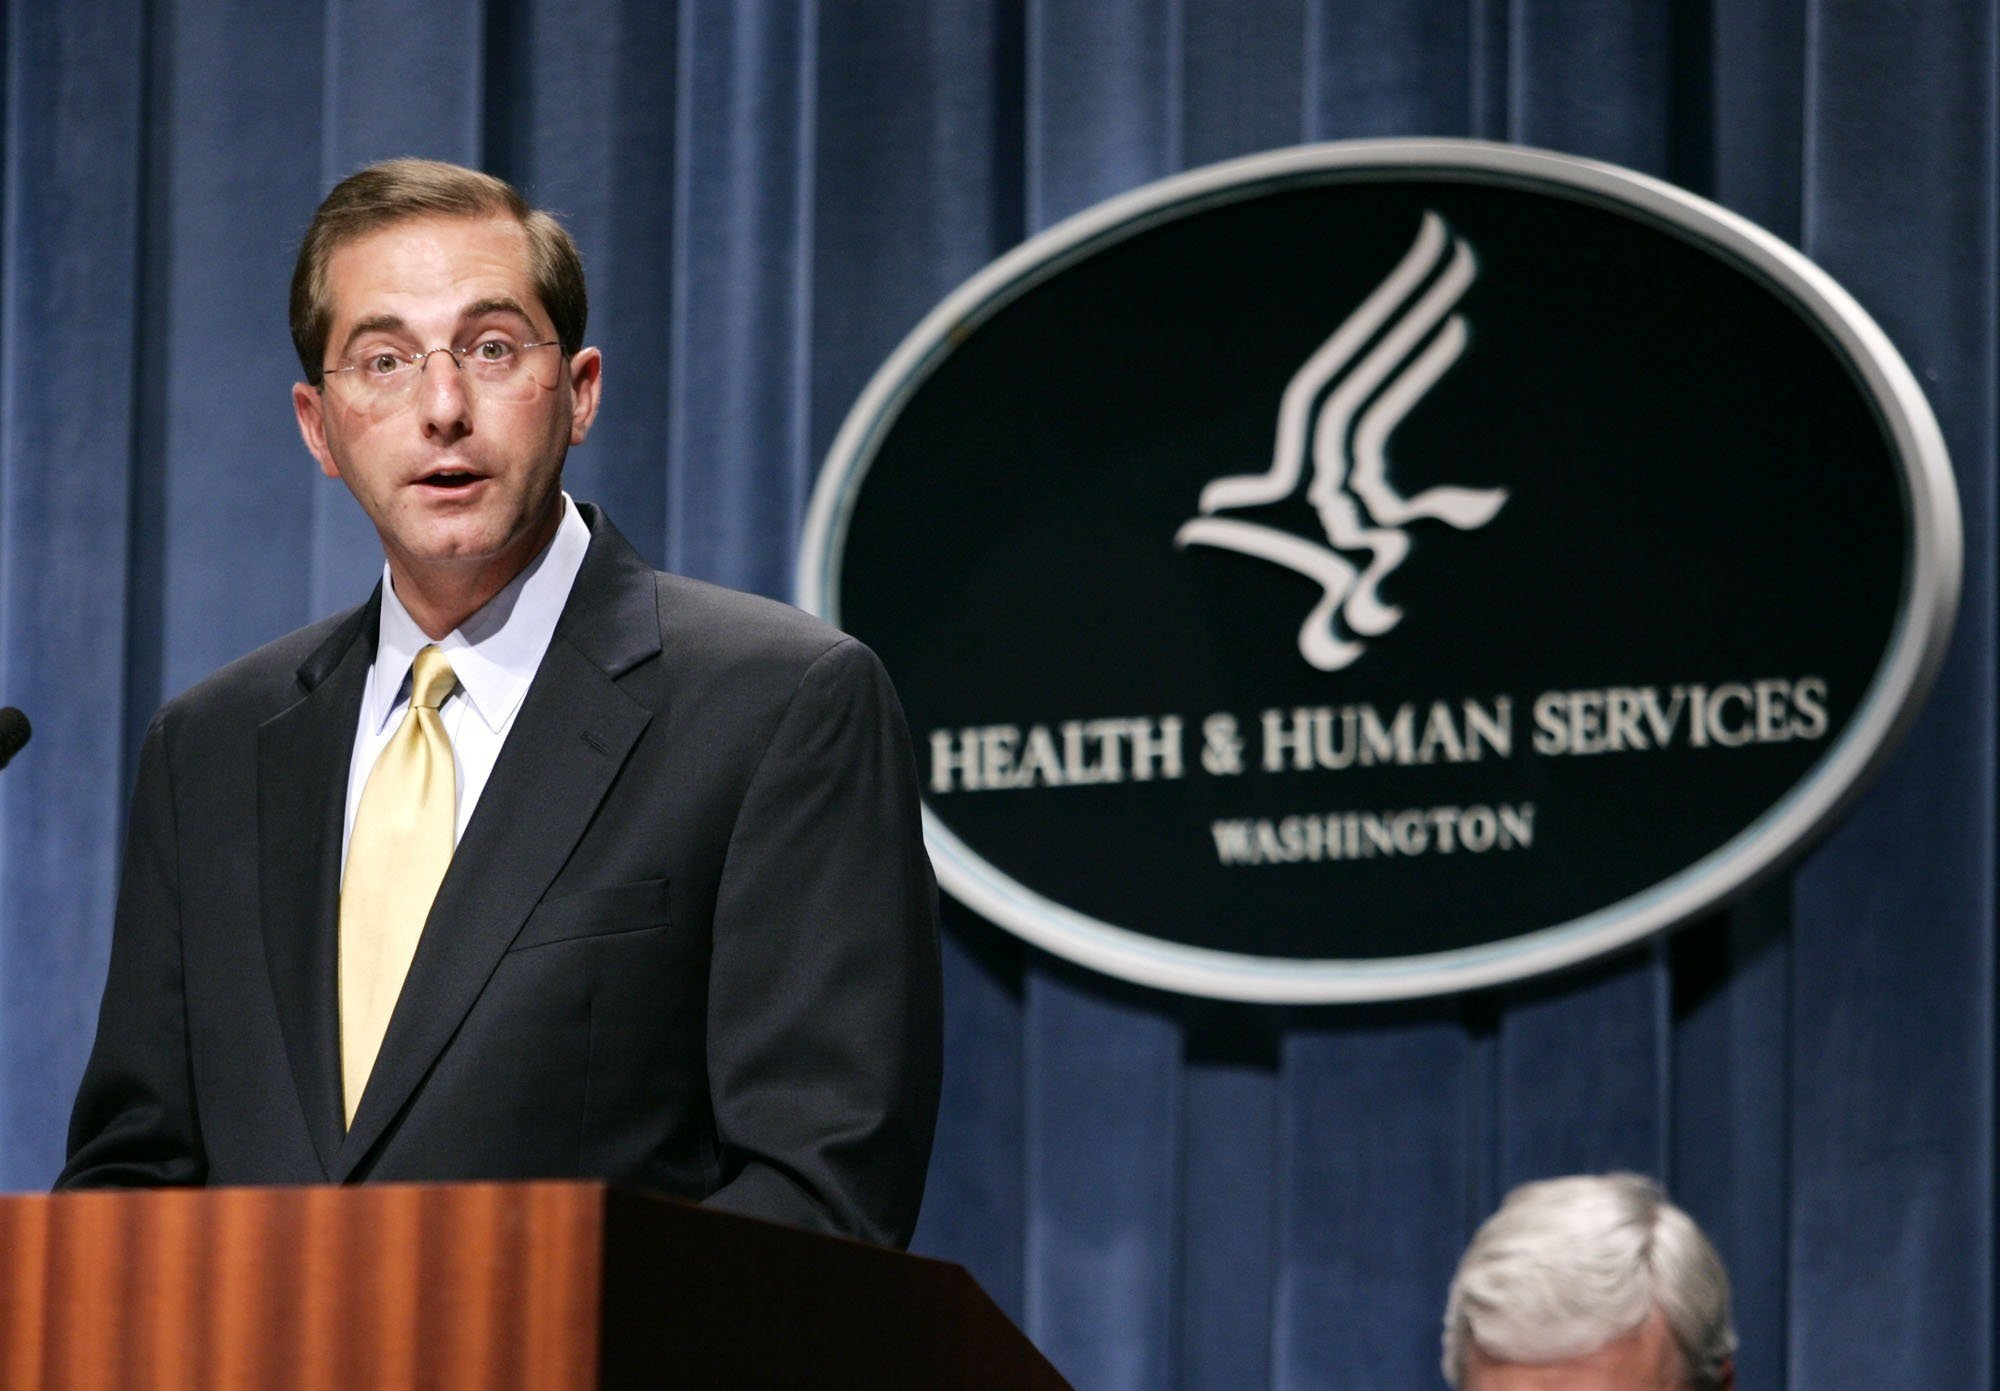 Takeaways from Alex Azar's Confirmation Hearing